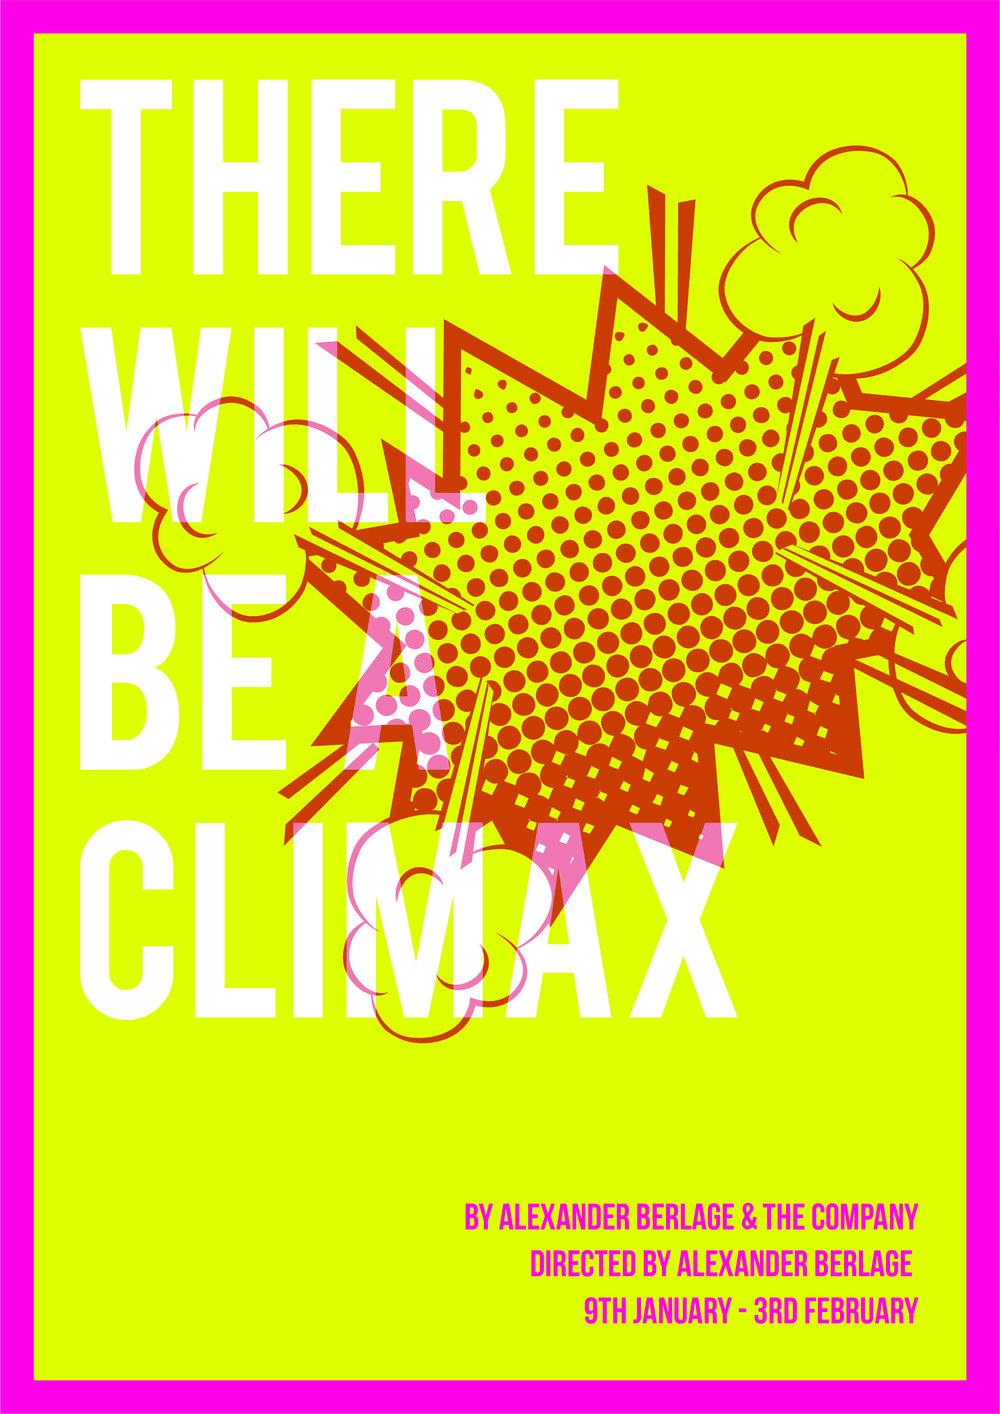 RLP19763_There will be a climax_Web_A4-01.jpg